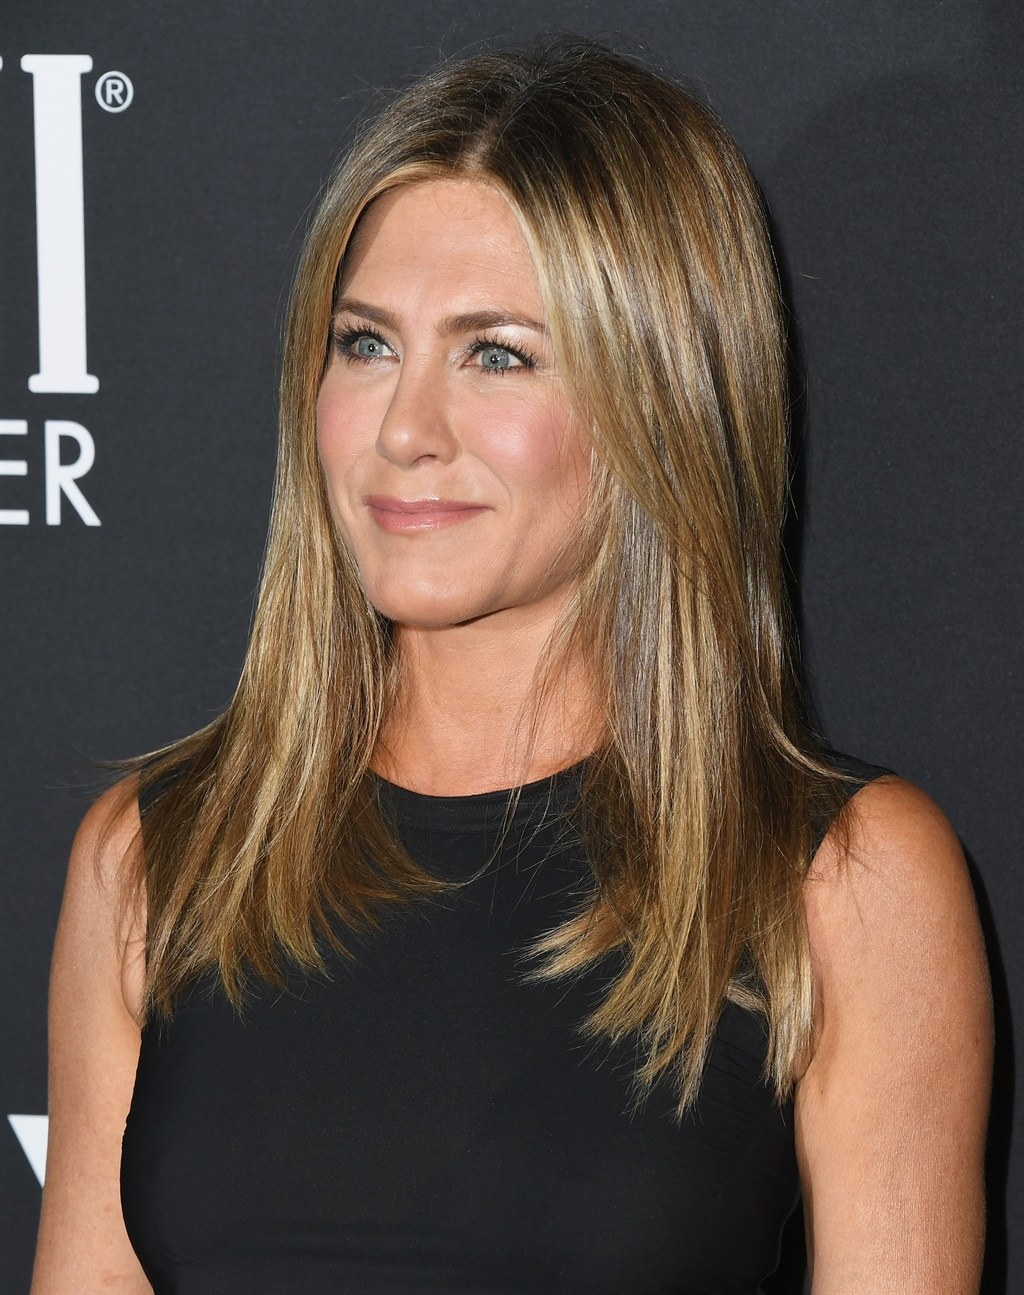 LOS ANGELES, CA - OCTOBER 22: Jennifer Aniston at